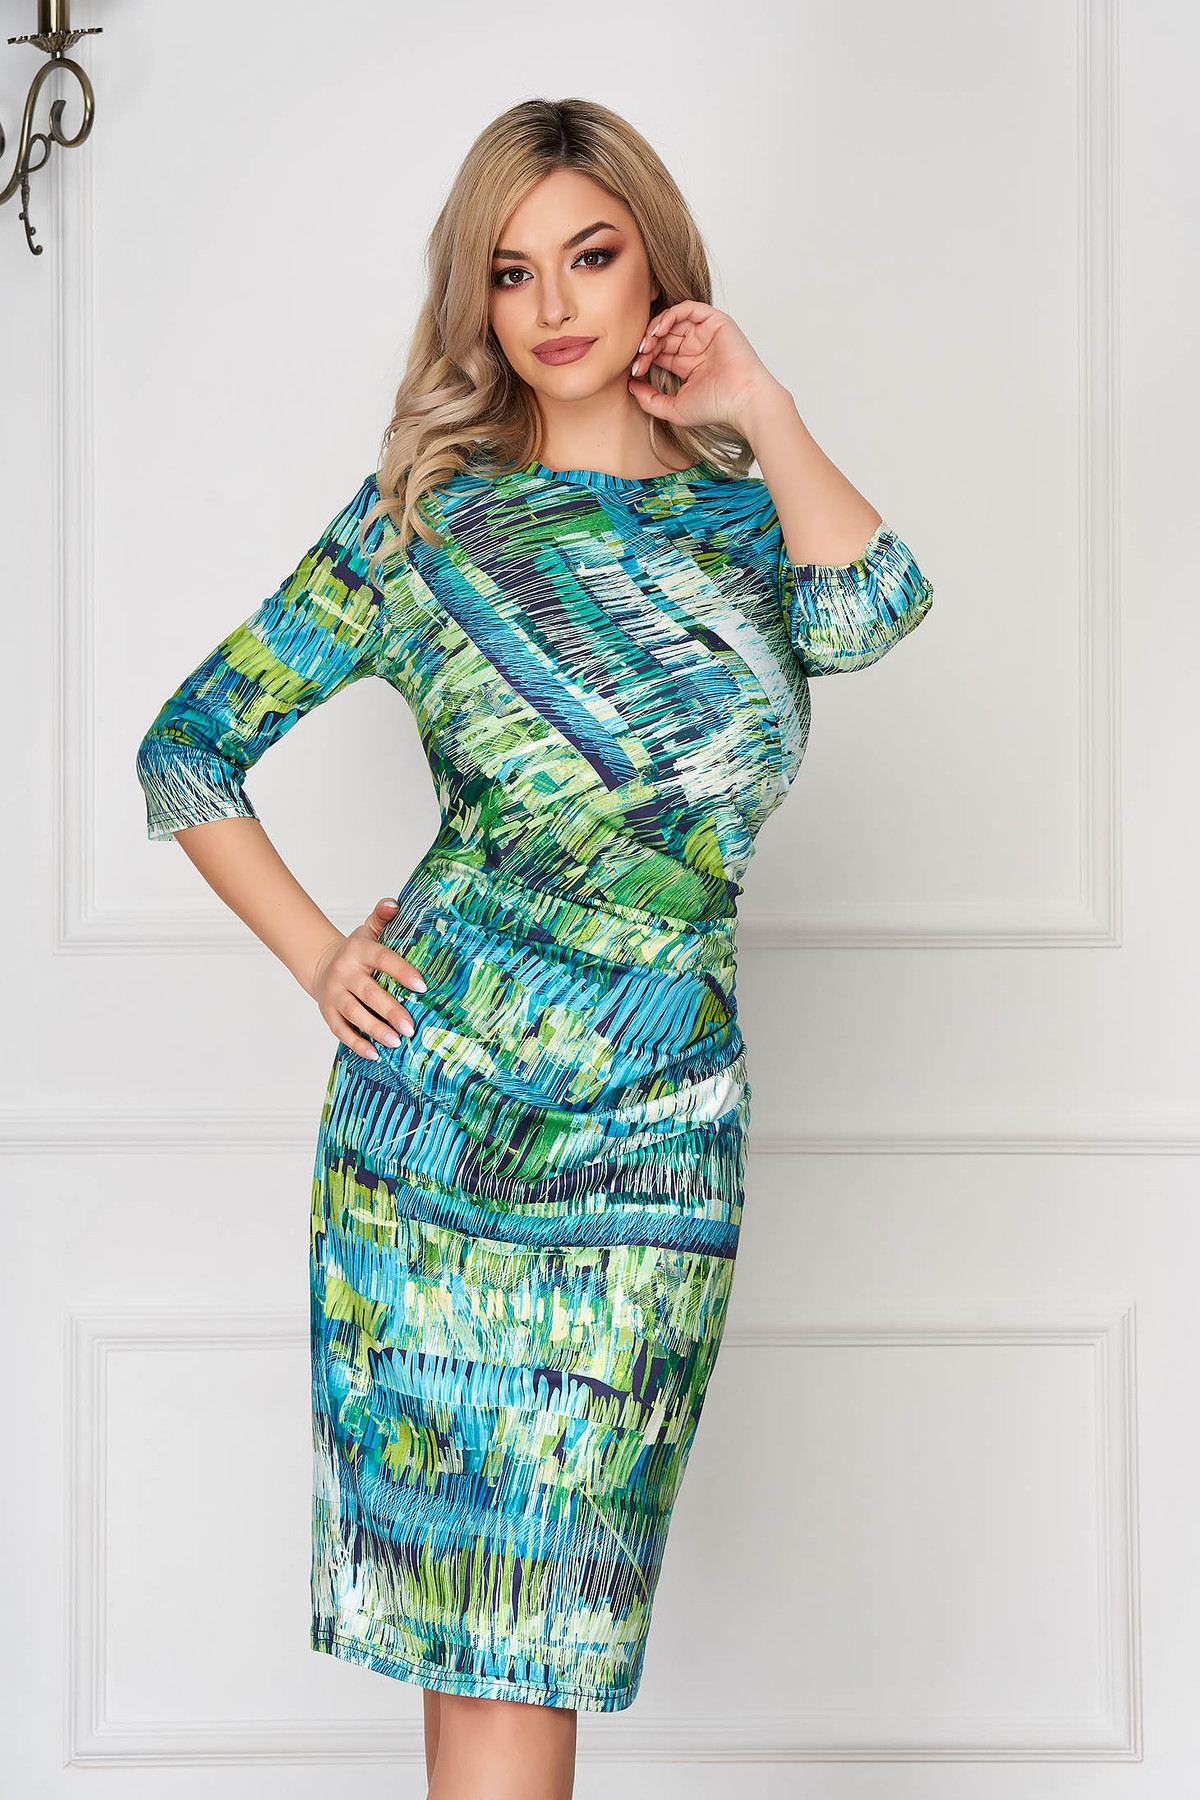 Rochie StarShinerS verde office midi tip creion cu maneci lungi si pliuri in talie StarShinerS